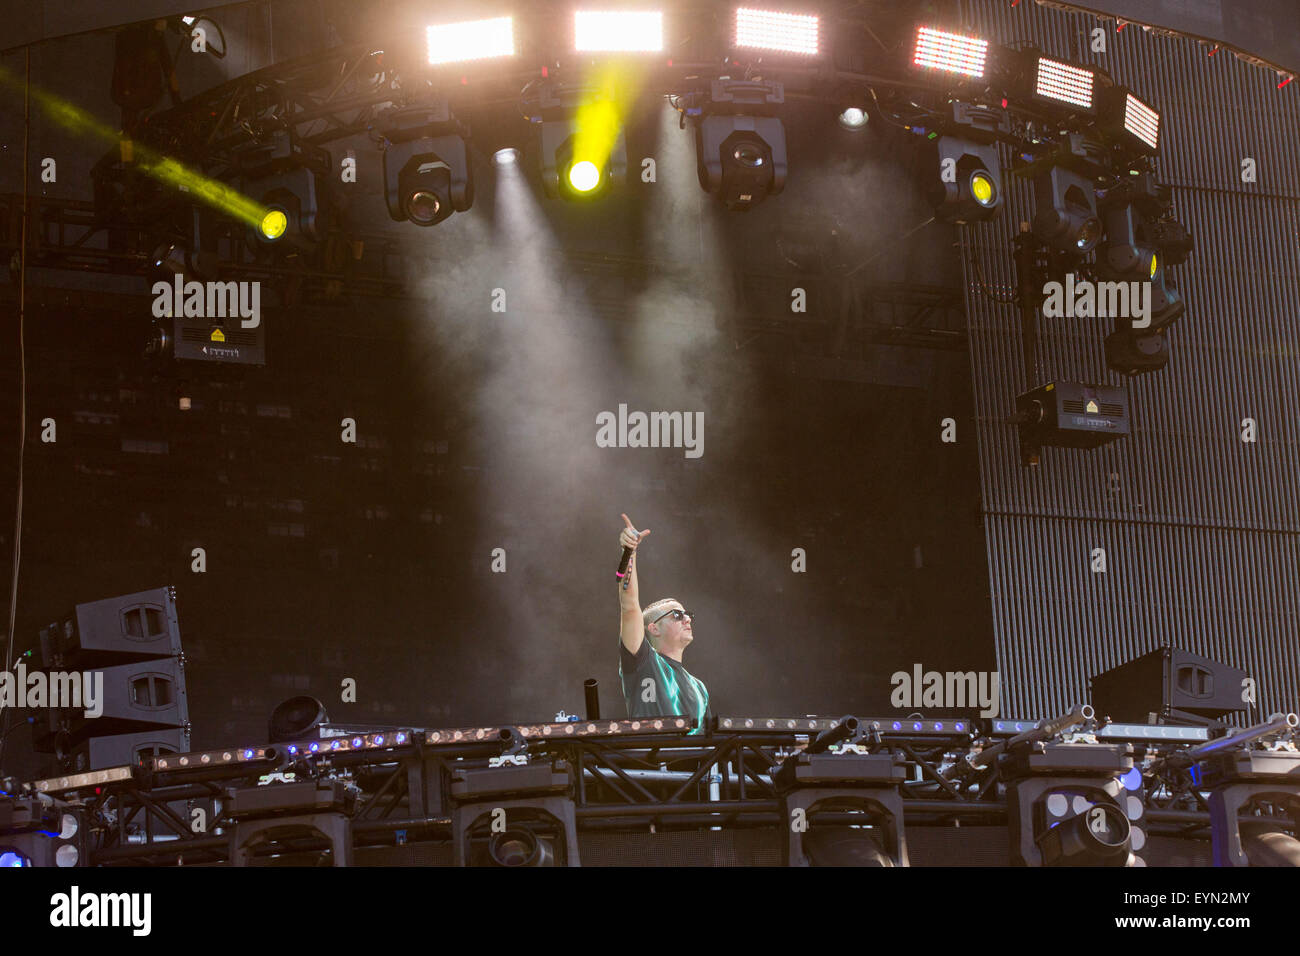 Chicago, Illinois, USA. 31st July, 2015. DJ SNAKE performs live in Grant Park at the Lollapalooza Music Festival - Stock Image